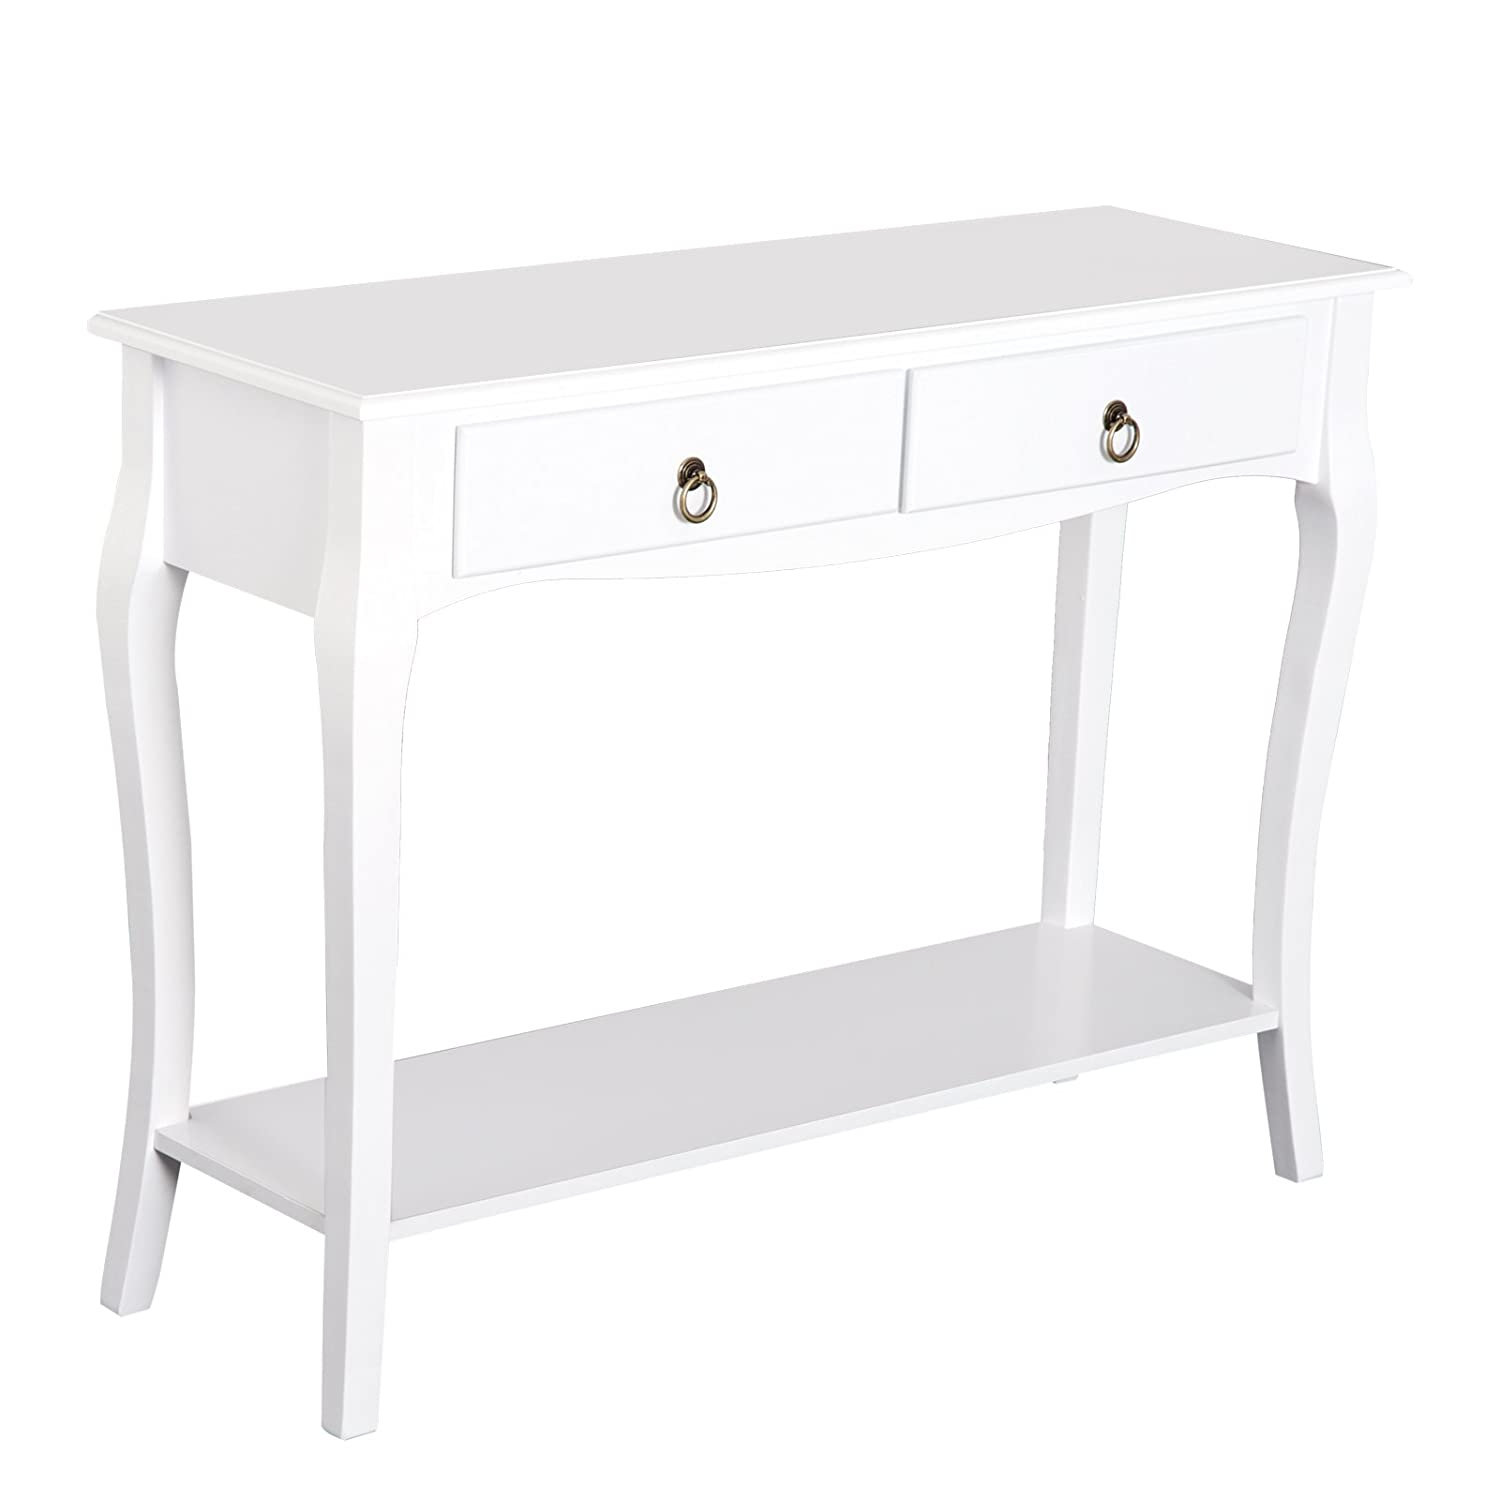 HOMCOM MDF Console Table Storage Display Desk Home Office 2 Drawers Modern Eco-friendly - Ivory White Sold by MHSTAR